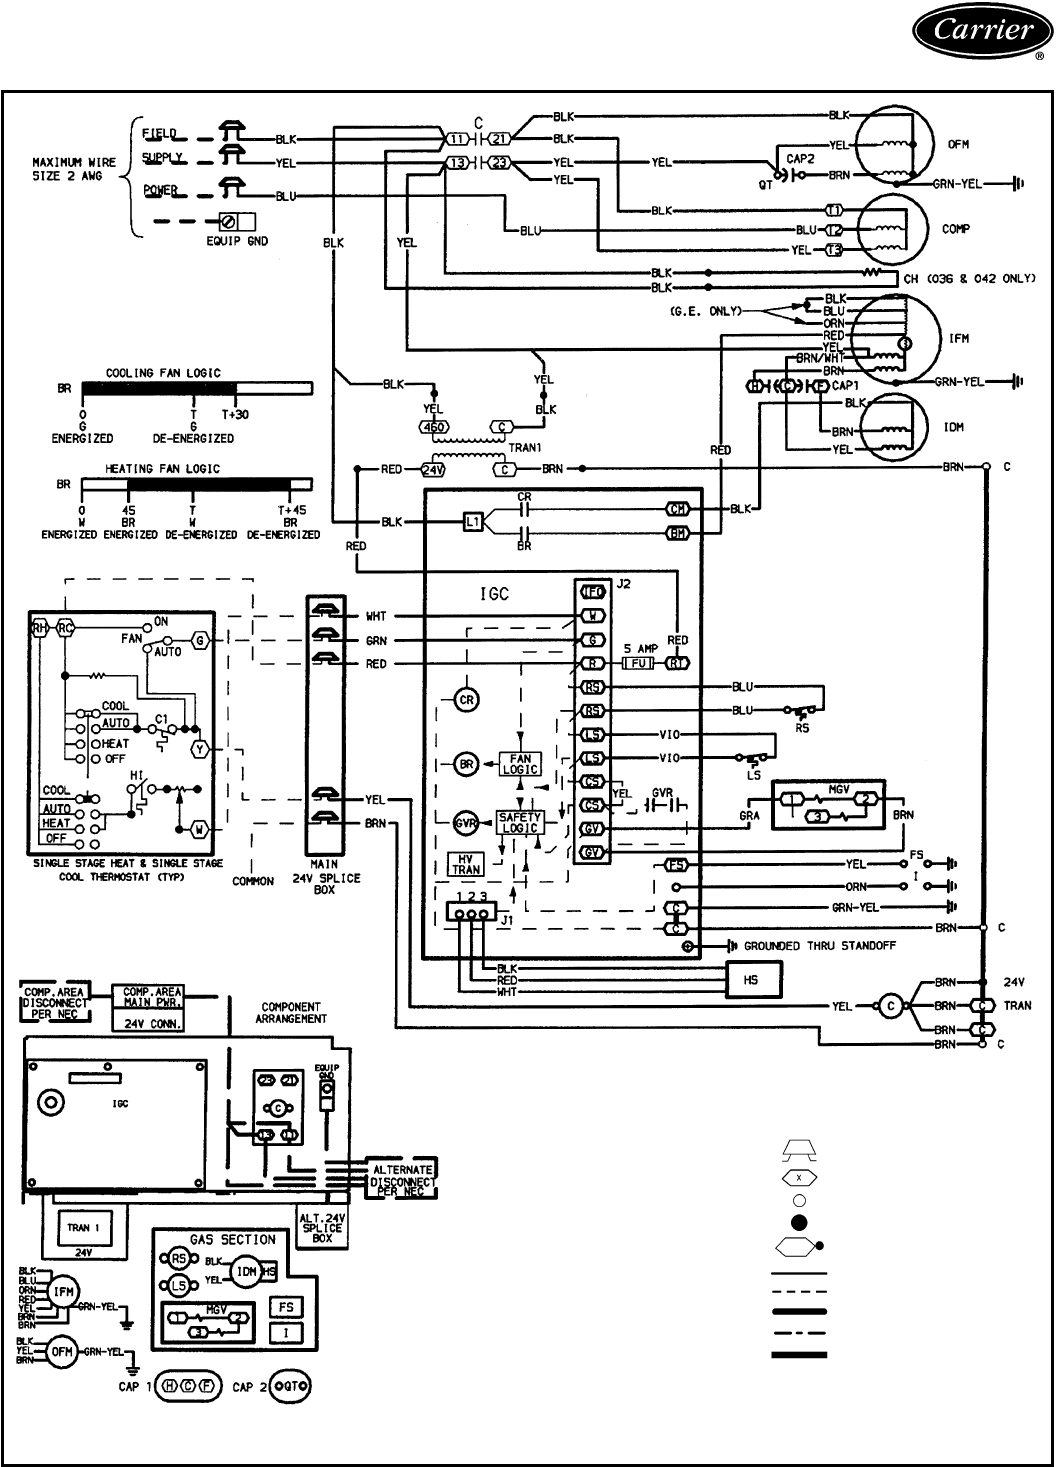 595e8aca 1cba 4ce6 ac3f ef414be0010d bg17 carrier 48ss gas valve wiring diagram carrier wiring diagrams Carrier HVAC Wiring Diagrams at virtualis.co